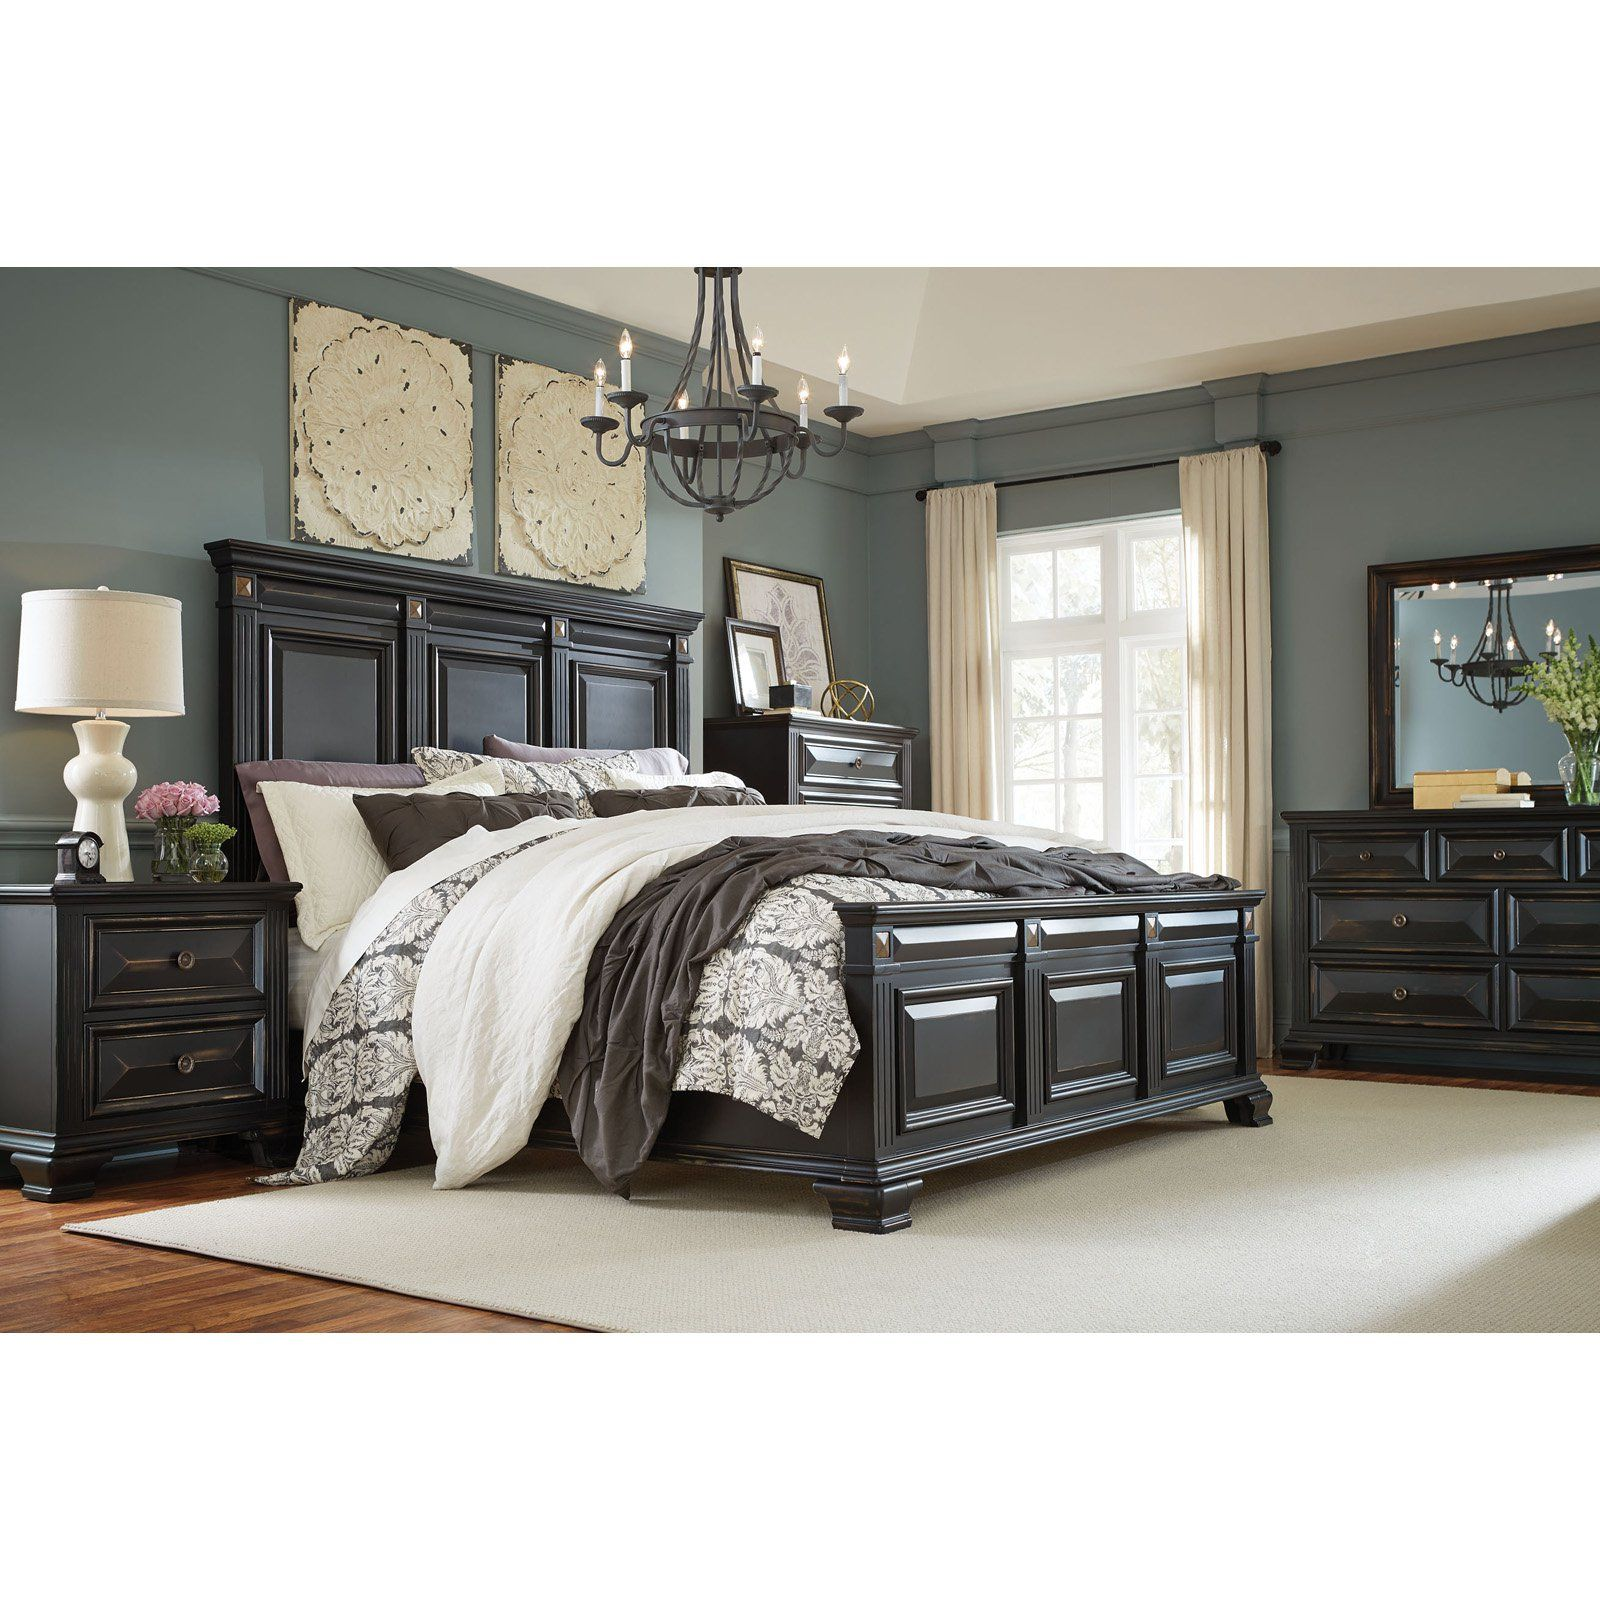 Standard Furniture Passages Panel Bed Size Queen King Bedroom